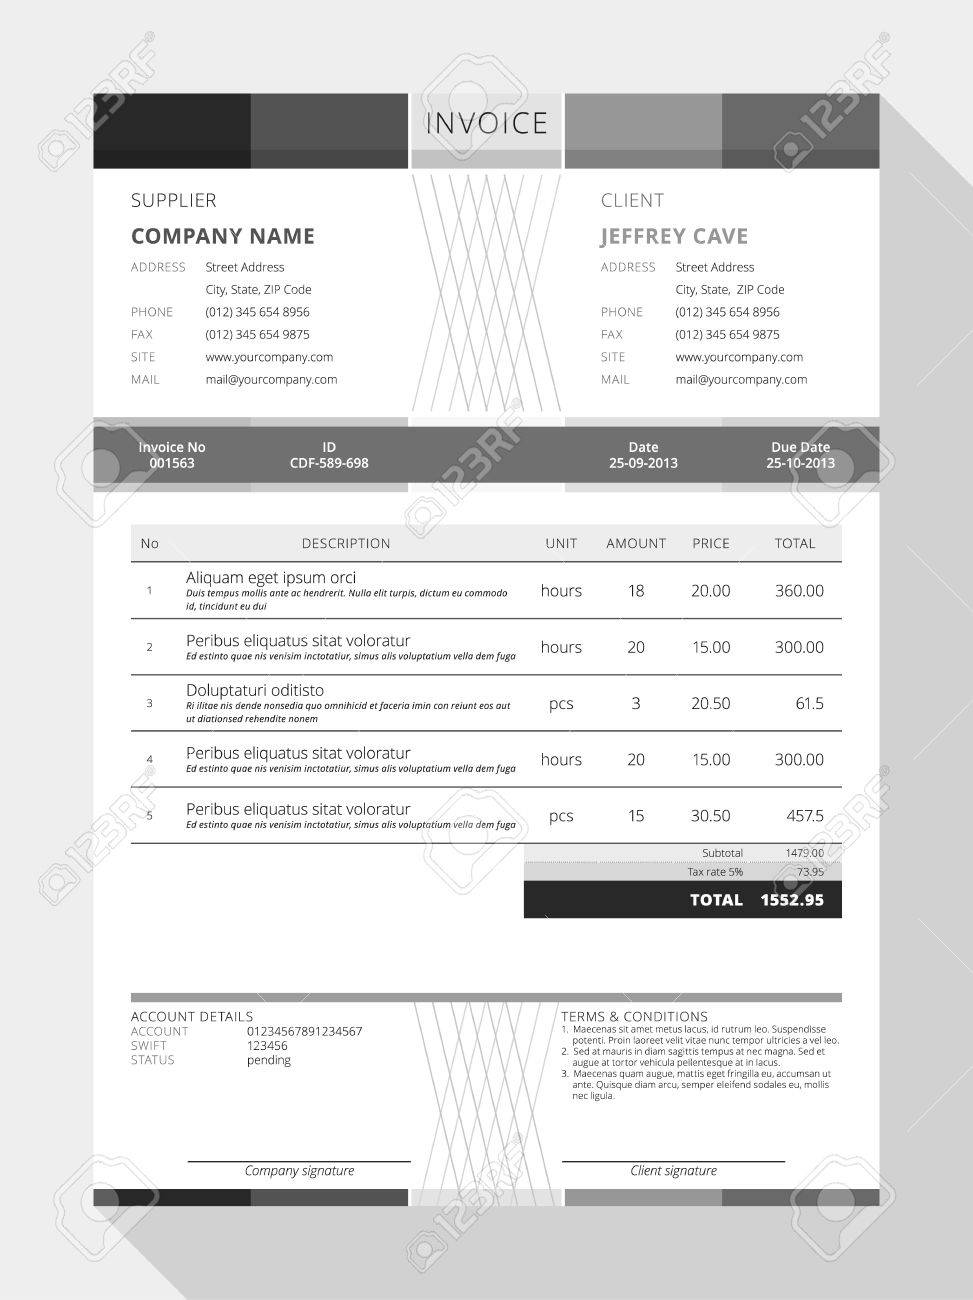 Howcanigettallerus  Ravishing Design An Invoice  Professional Graphic Design Invoice  With Fetching Vector Customizable Invoice Form Template Design Vector   Design An Invoice With Attractive Second Hand Car Receipt Also Receipt Holder Organizer In Addition Receipt Template Office And I Acknowledge Receipt Of Your Letter As Well As Lic Premium Receipt Online Additionally Cash Receipt Generator From Happytomco With Howcanigettallerus  Fetching Design An Invoice  Professional Graphic Design Invoice  With Attractive Vector Customizable Invoice Form Template Design Vector   Design An Invoice And Ravishing Second Hand Car Receipt Also Receipt Holder Organizer In Addition Receipt Template Office From Happytomco